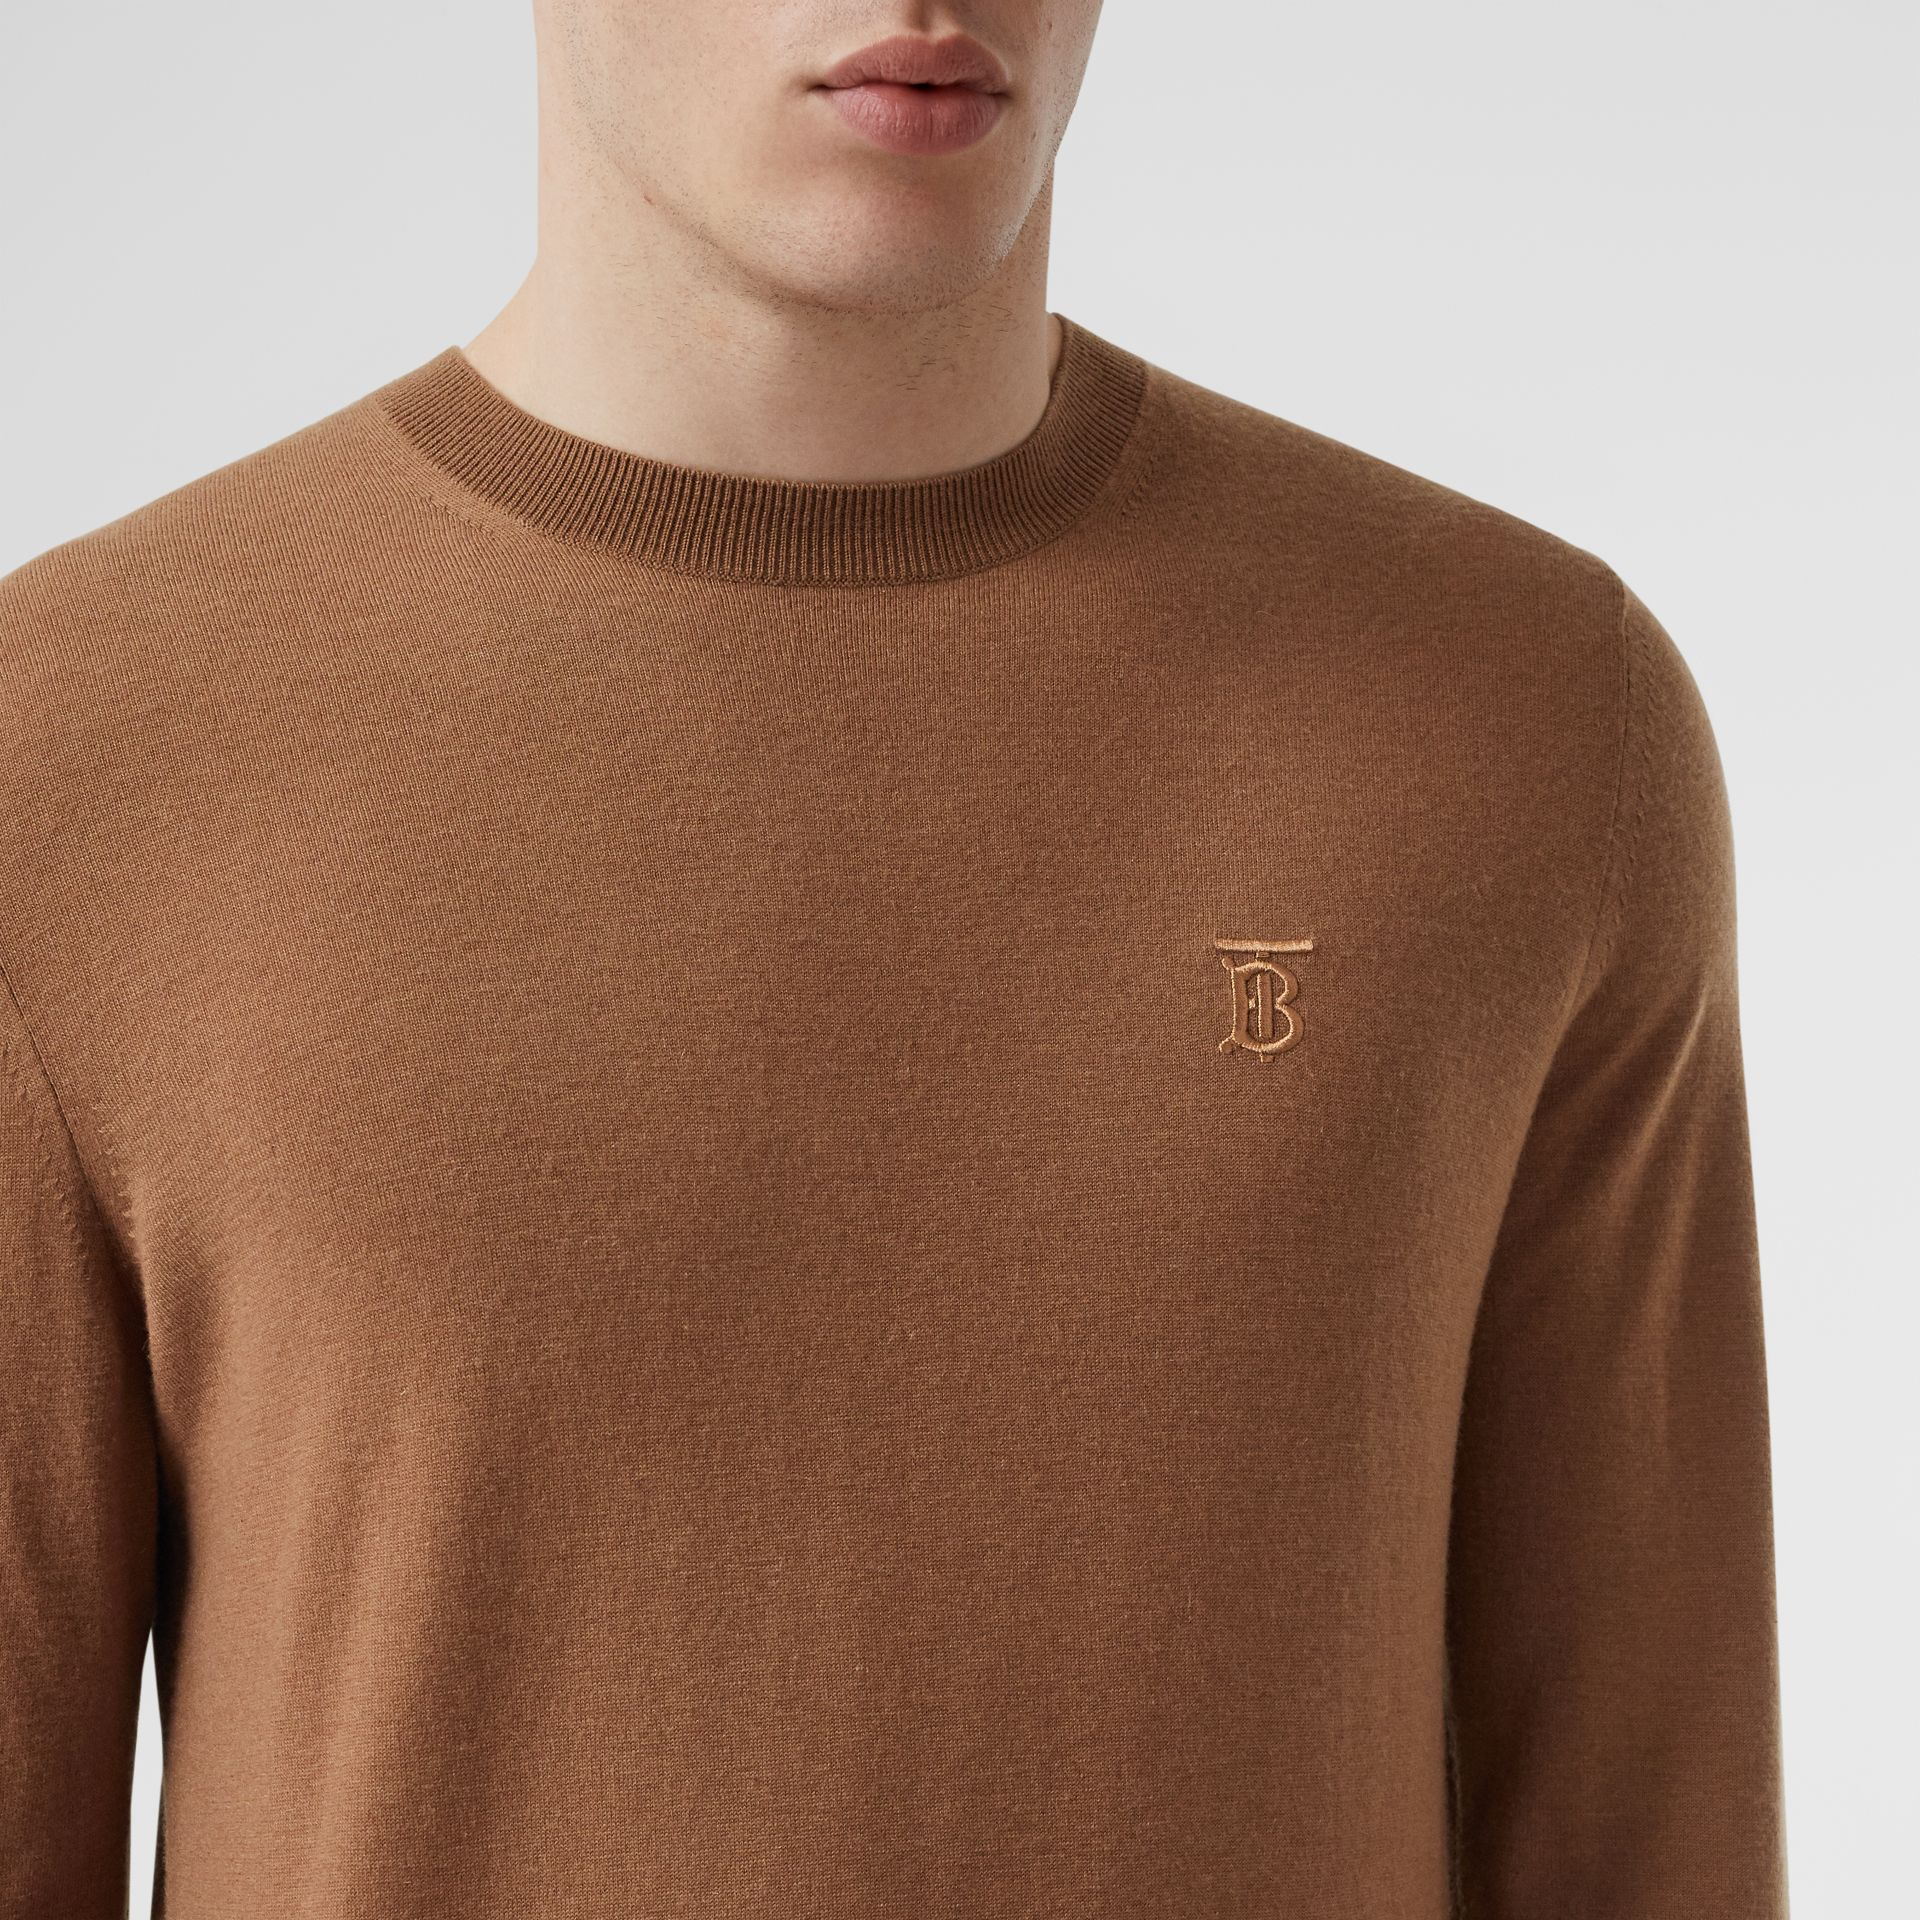 Monogram Motif Cashmere Sweater in Maple - Men | Burberry United Kingdom - gallery image 1